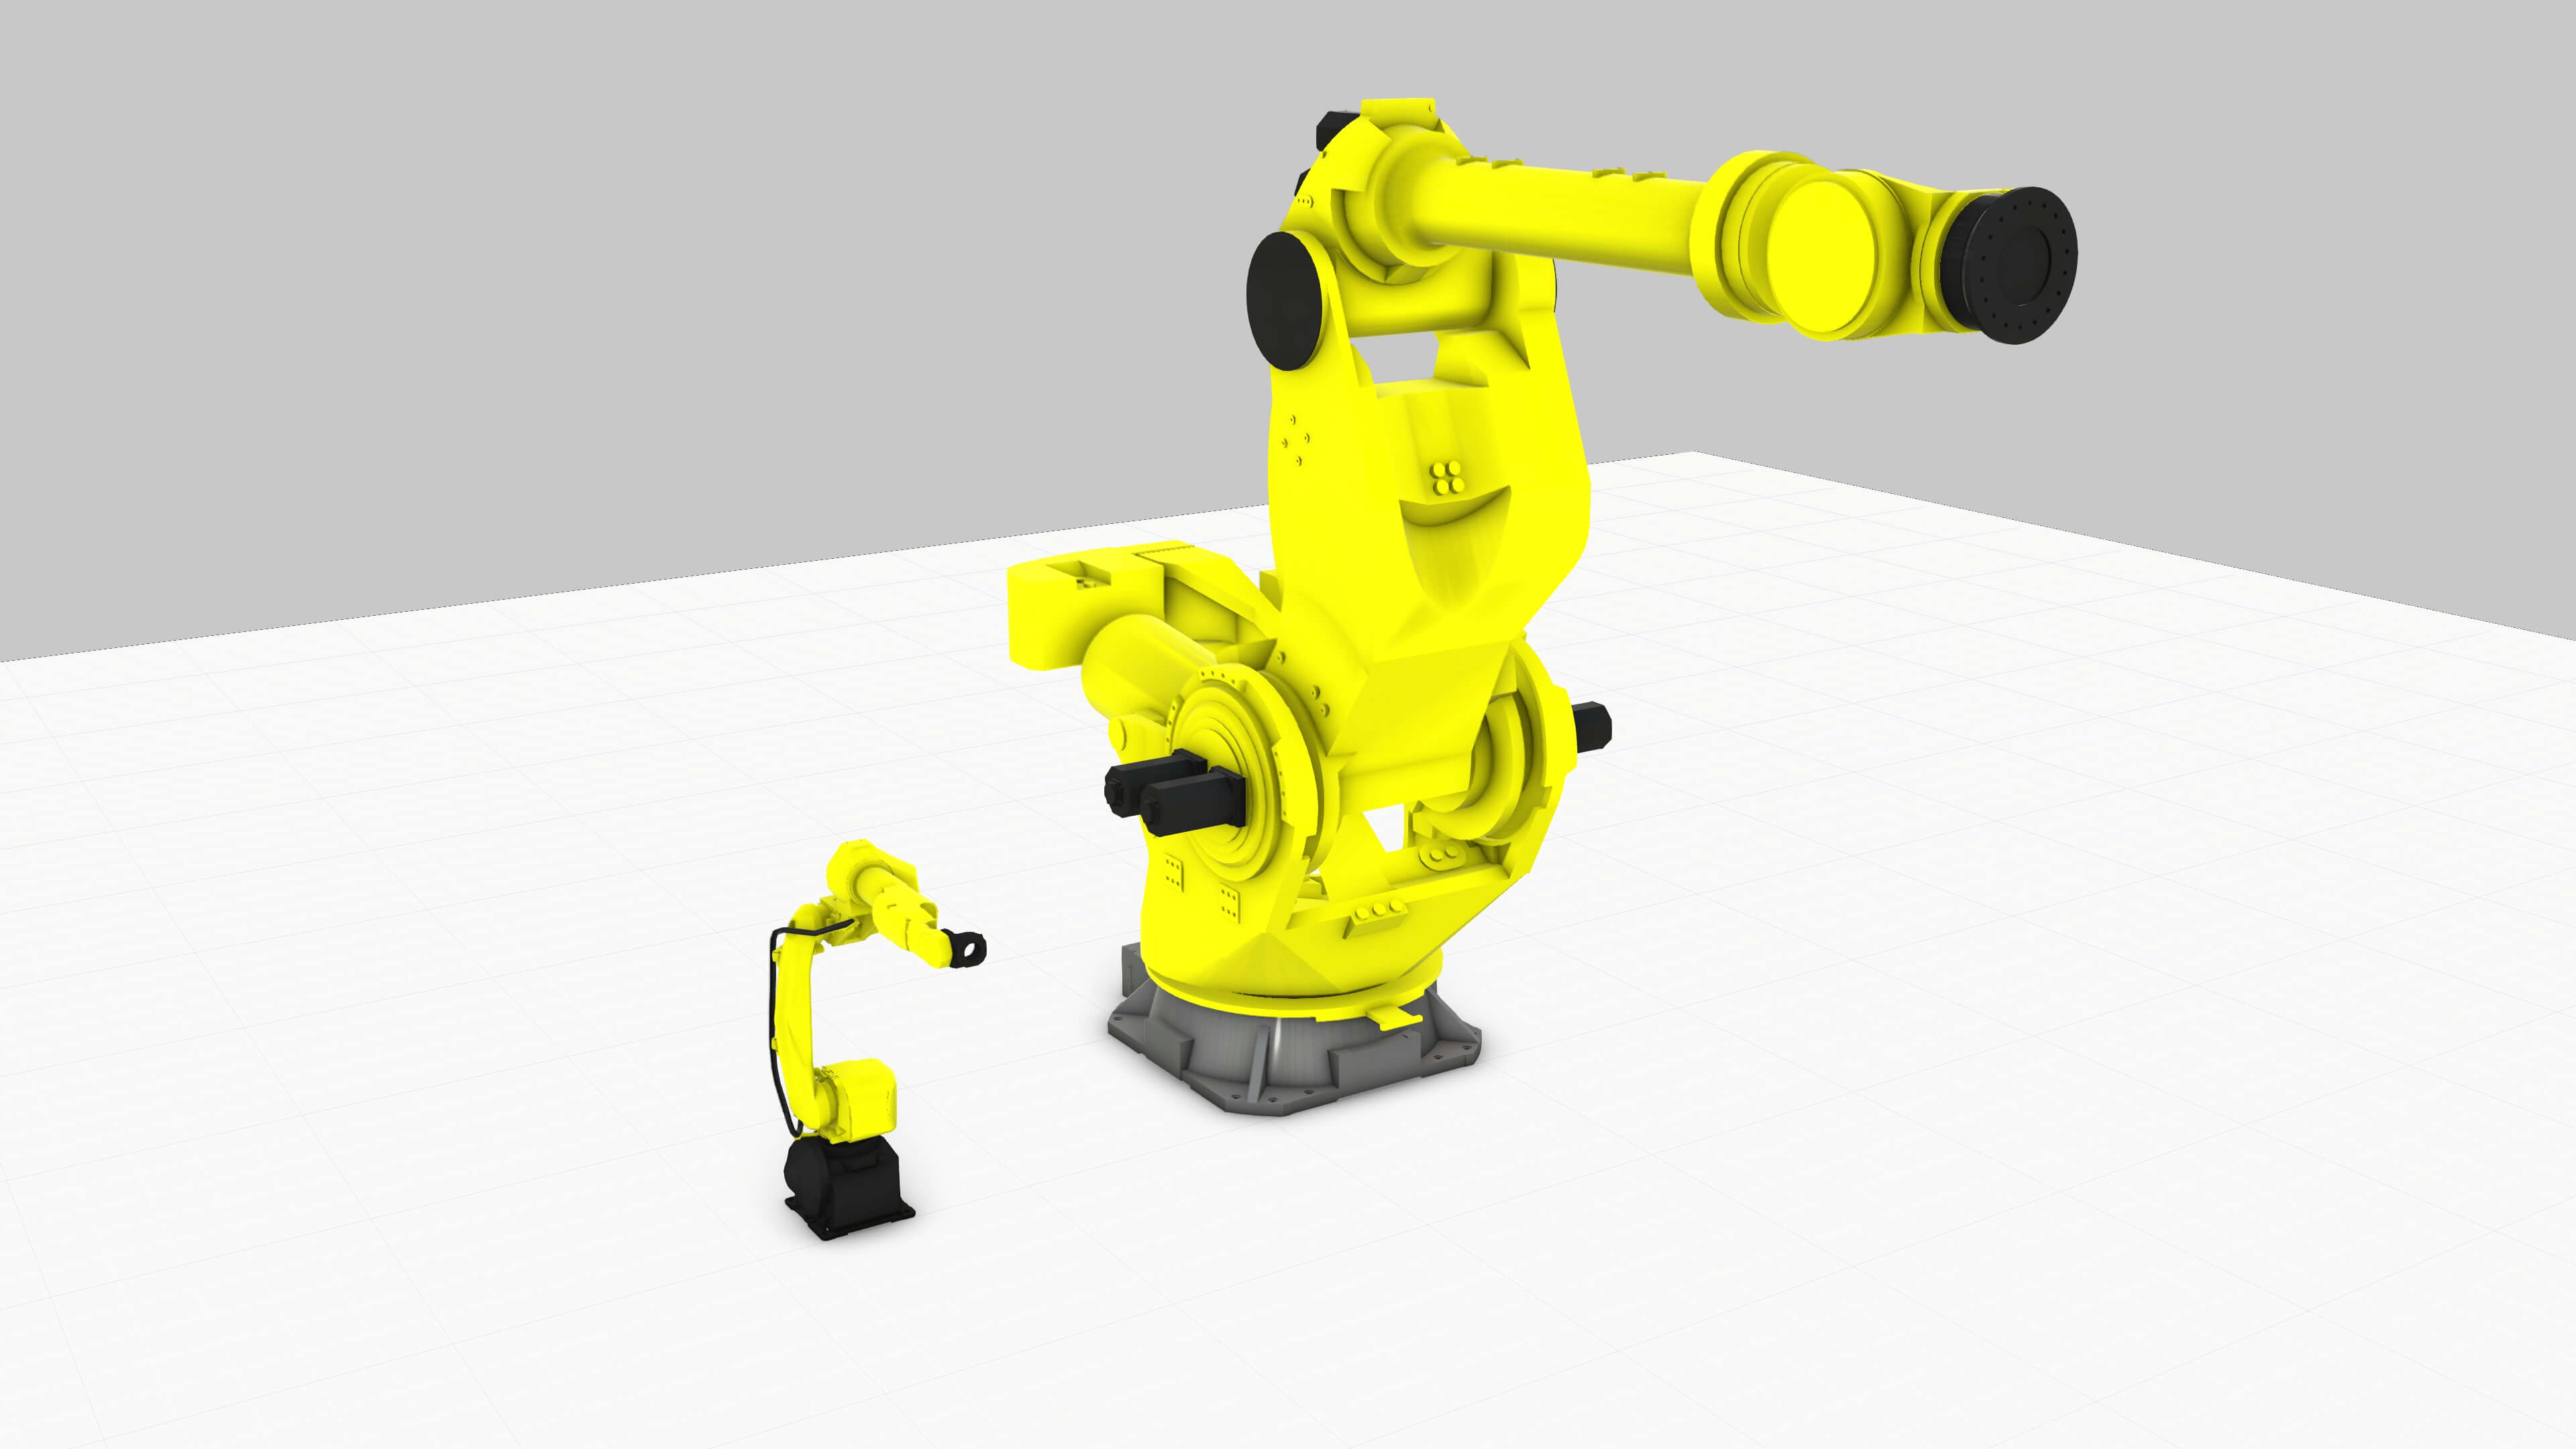 The new Fanuc component additions to Visual Components eCatalog in August 2018